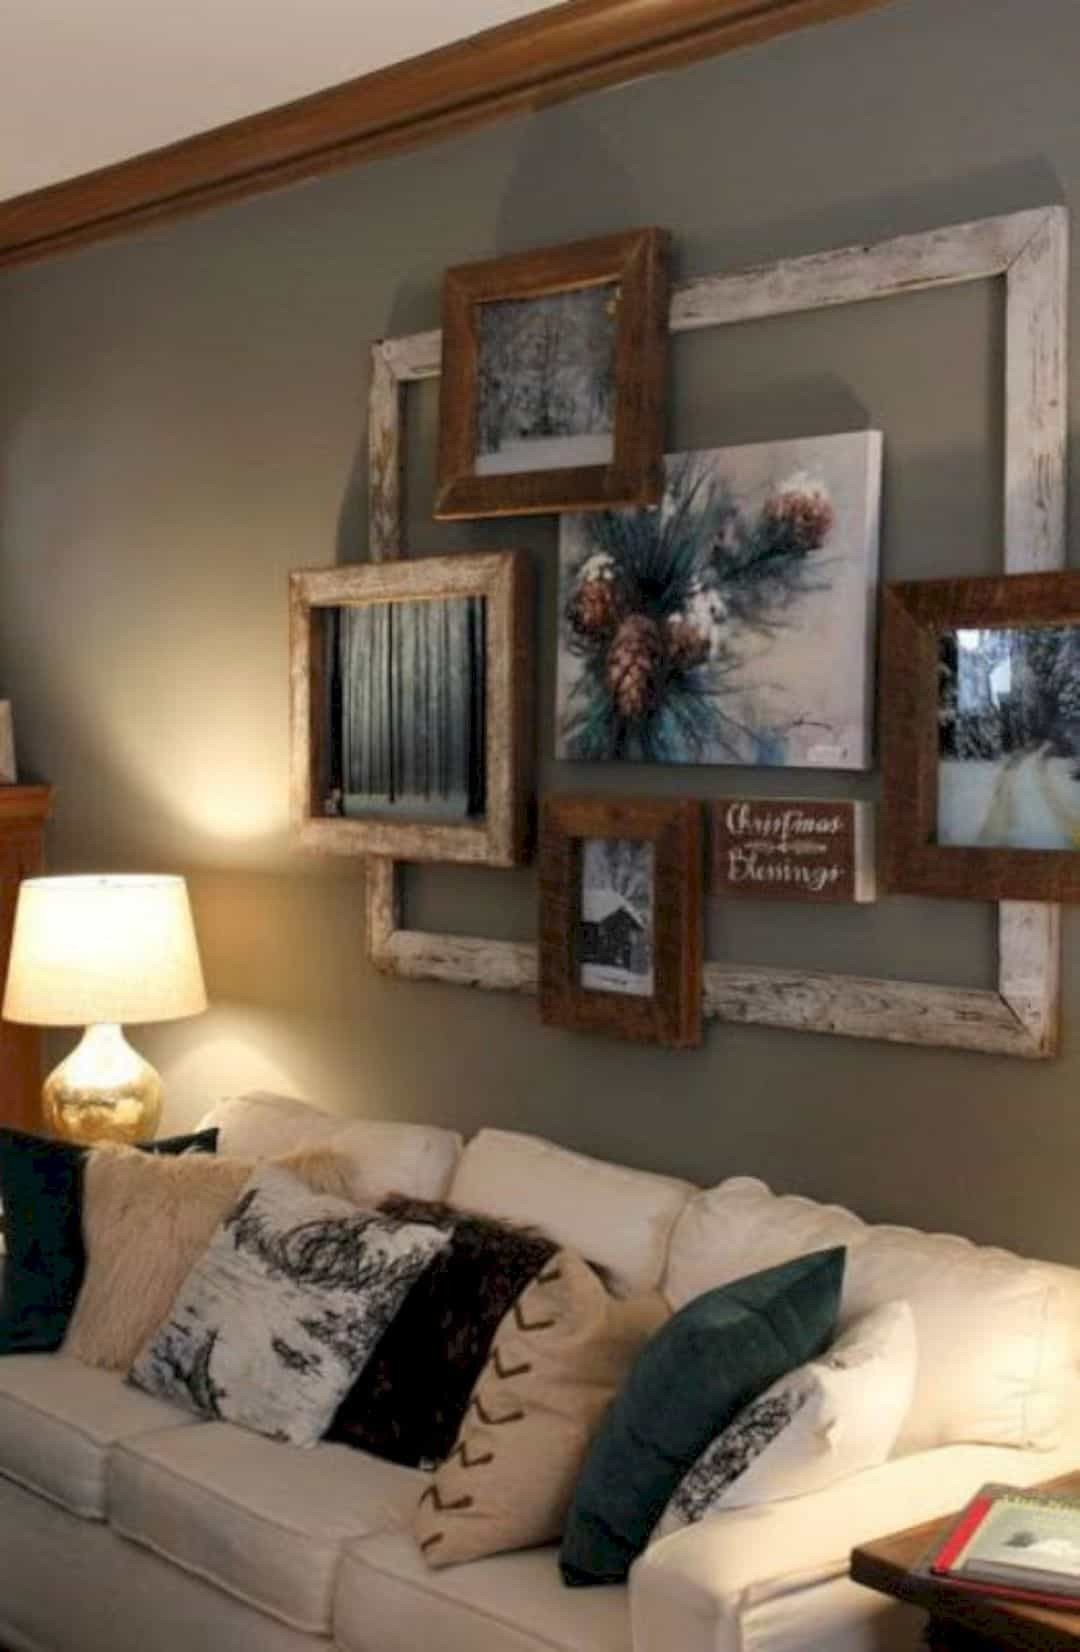 Diy Living Room Wall Decor 17 Diy Rustic Home Decor Ideas for Living Room